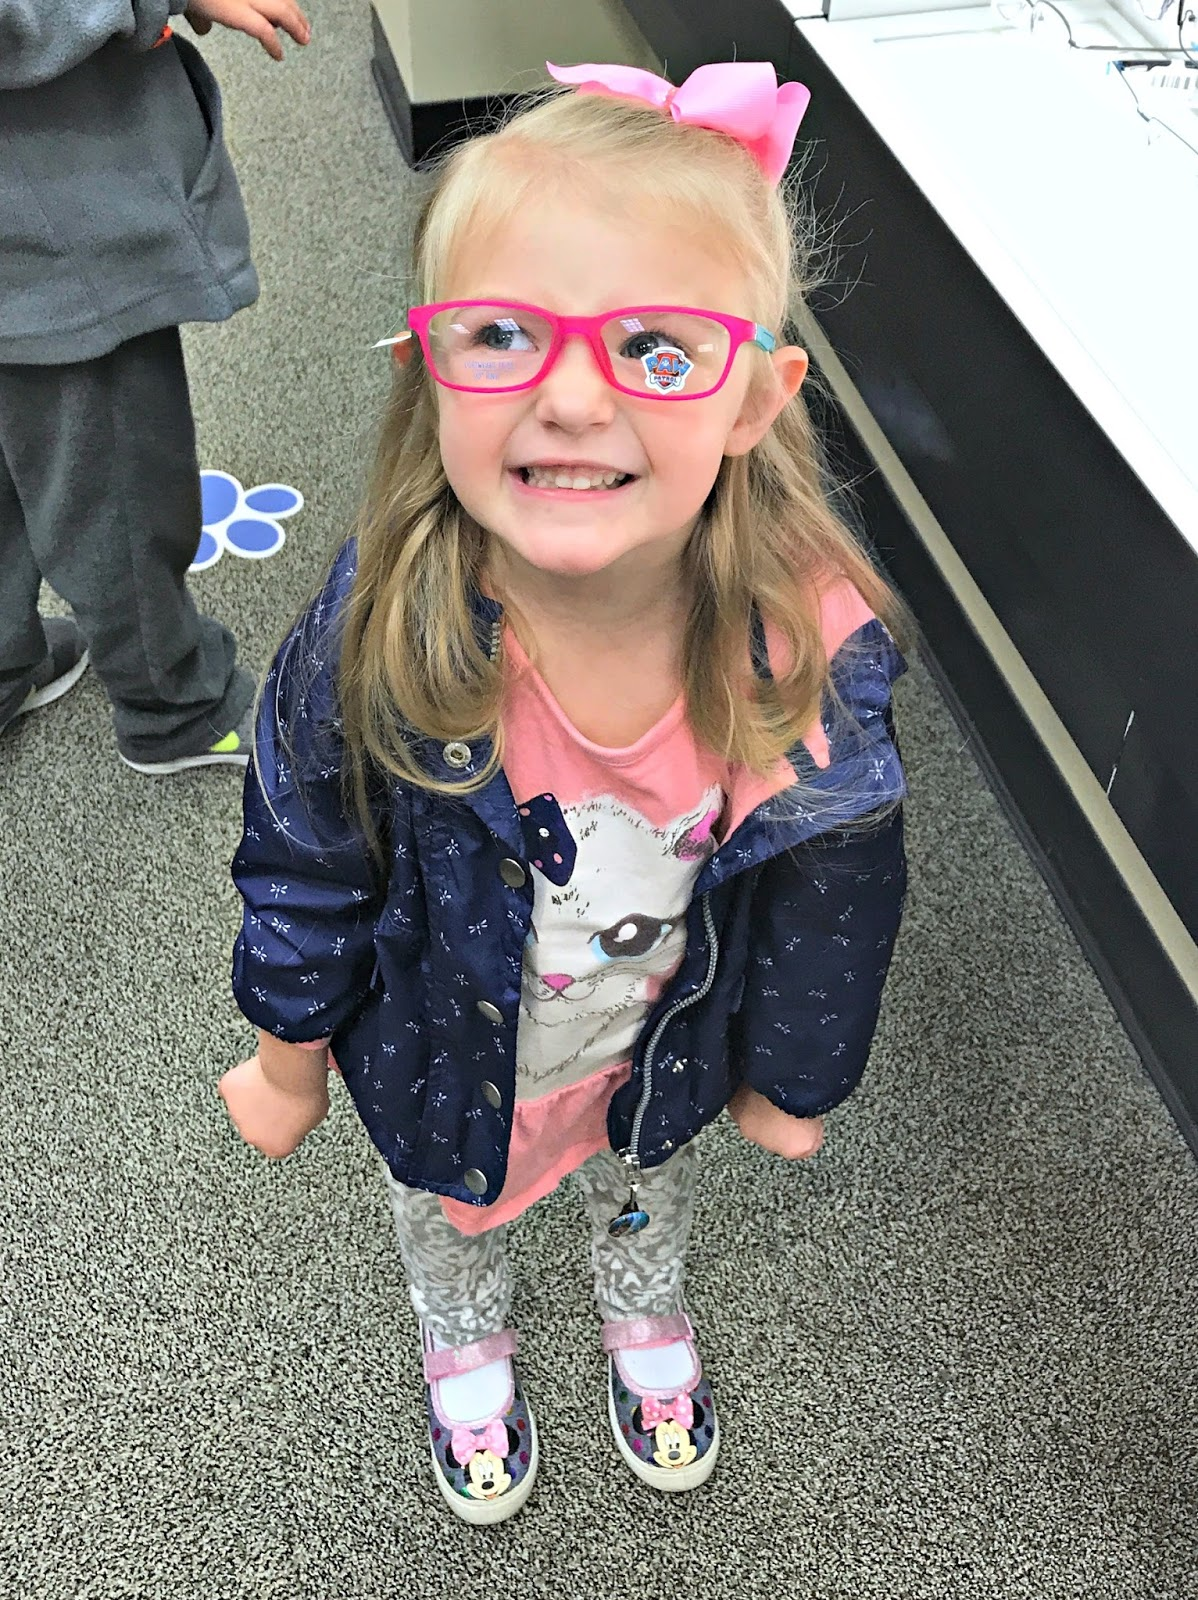 e169d5aeeb18 Nominate a Child in Need with  Visionworks and their  LetsGoSee ...